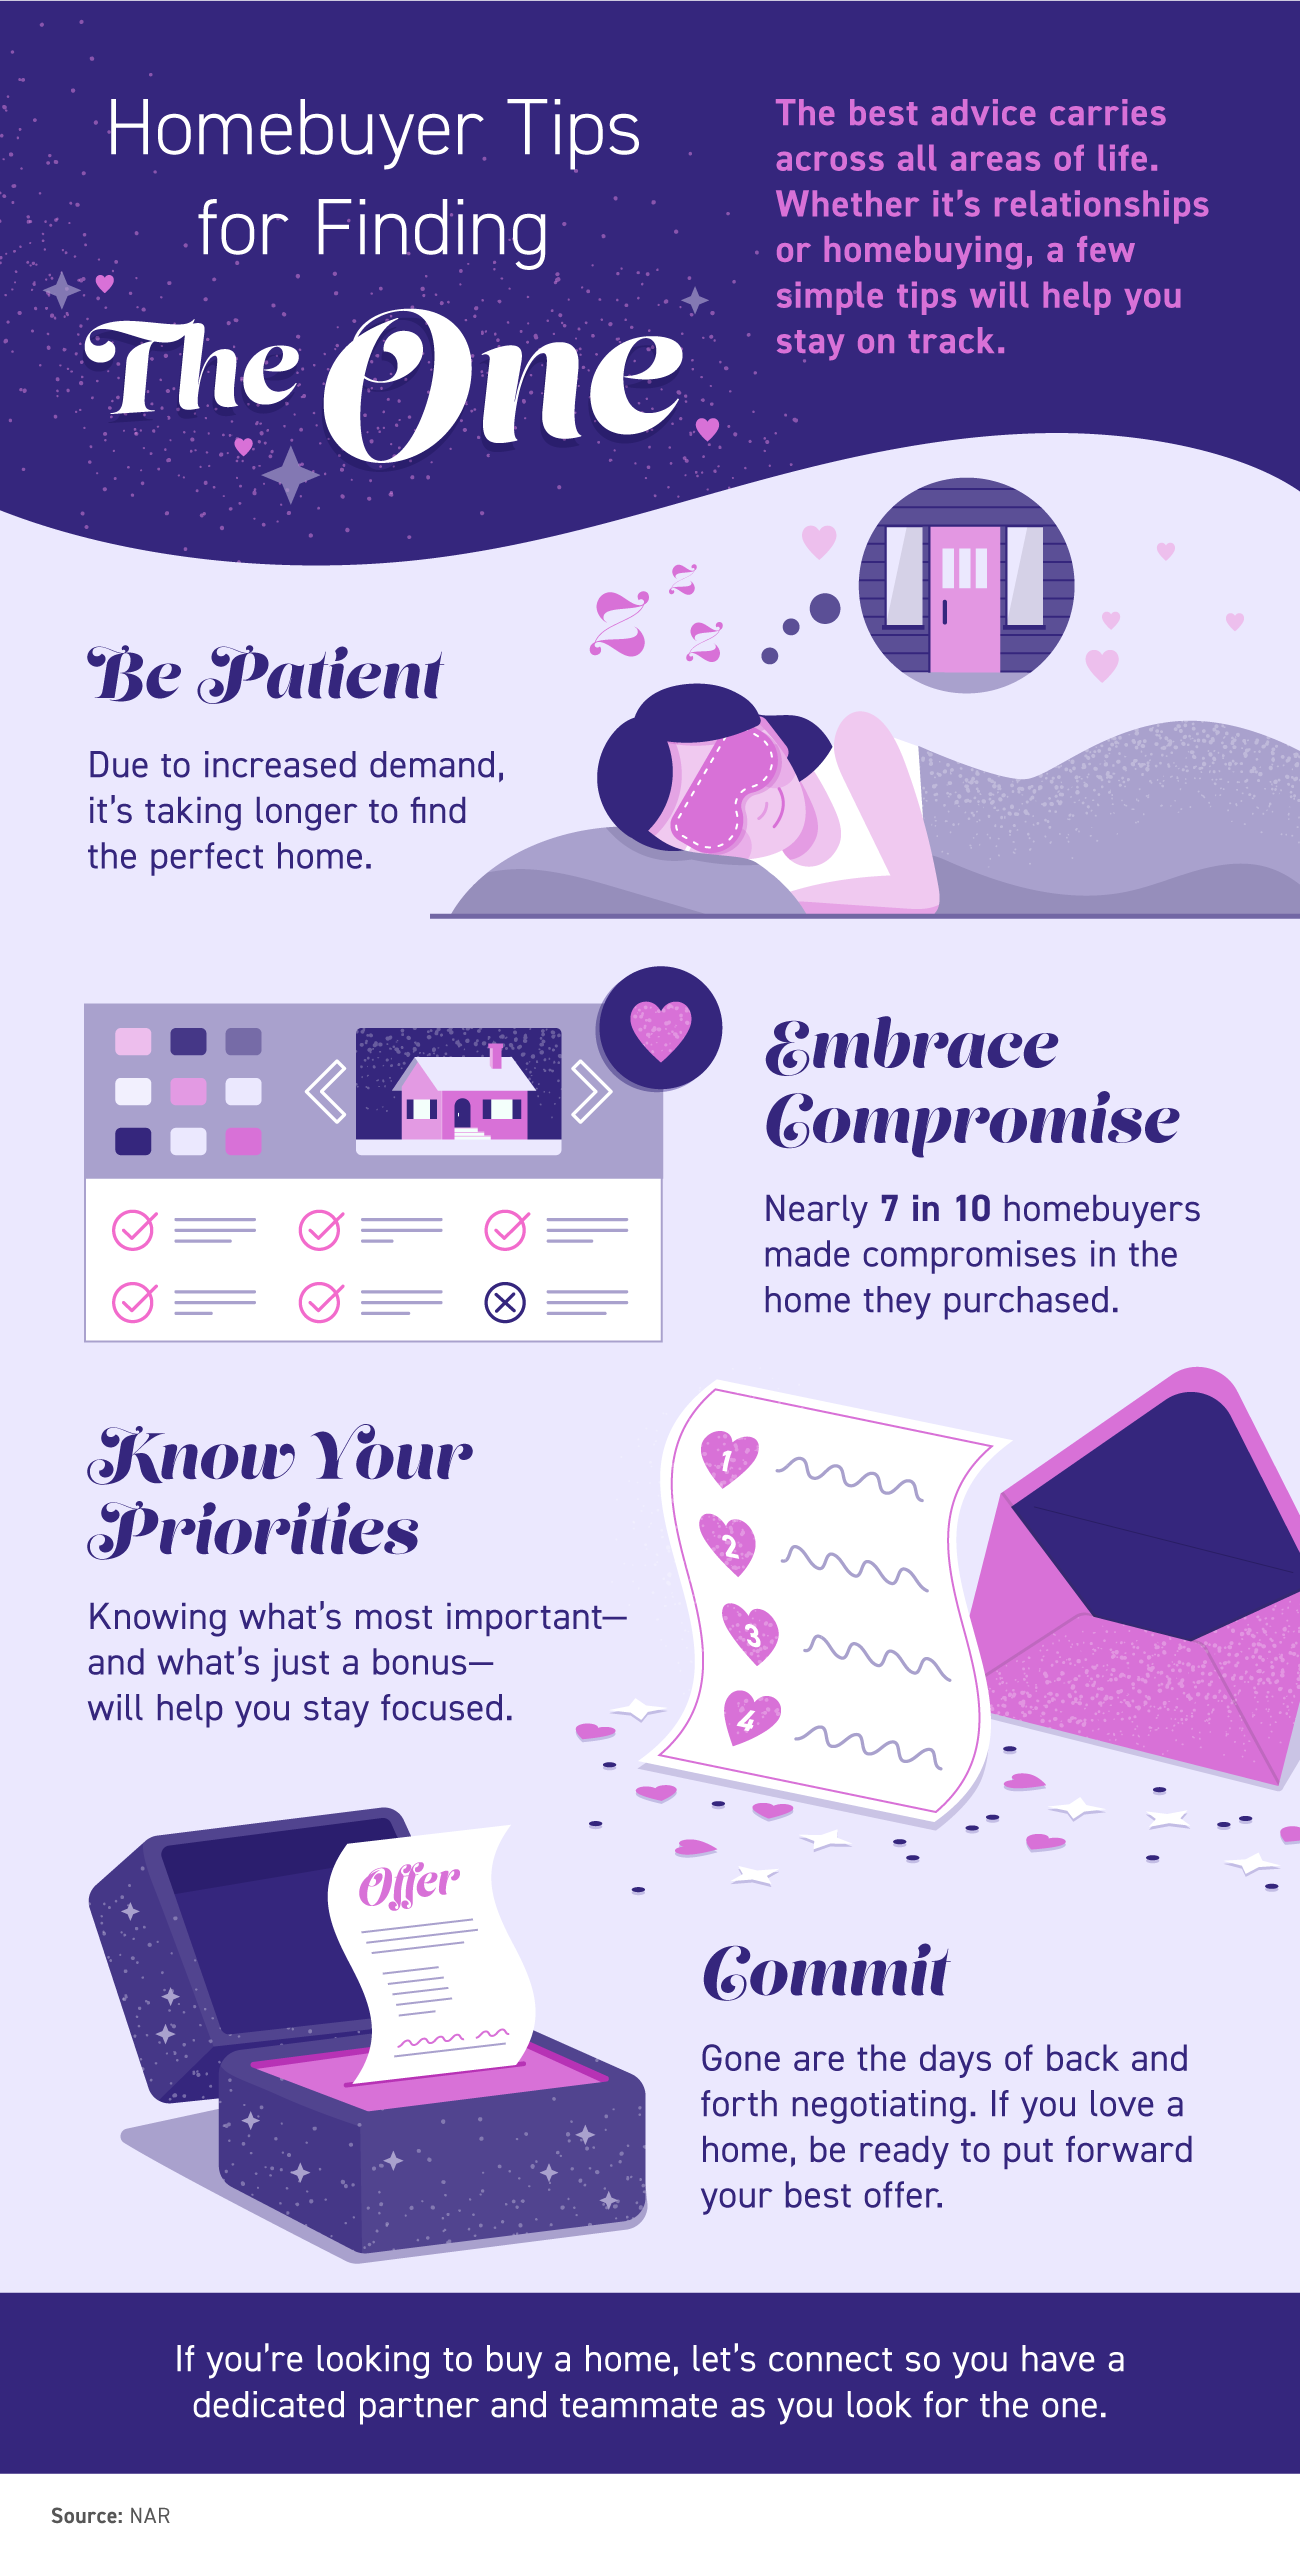 Homebuyer Tips for Finding the One [INFOGRAPHIC]   Simplifying The Market